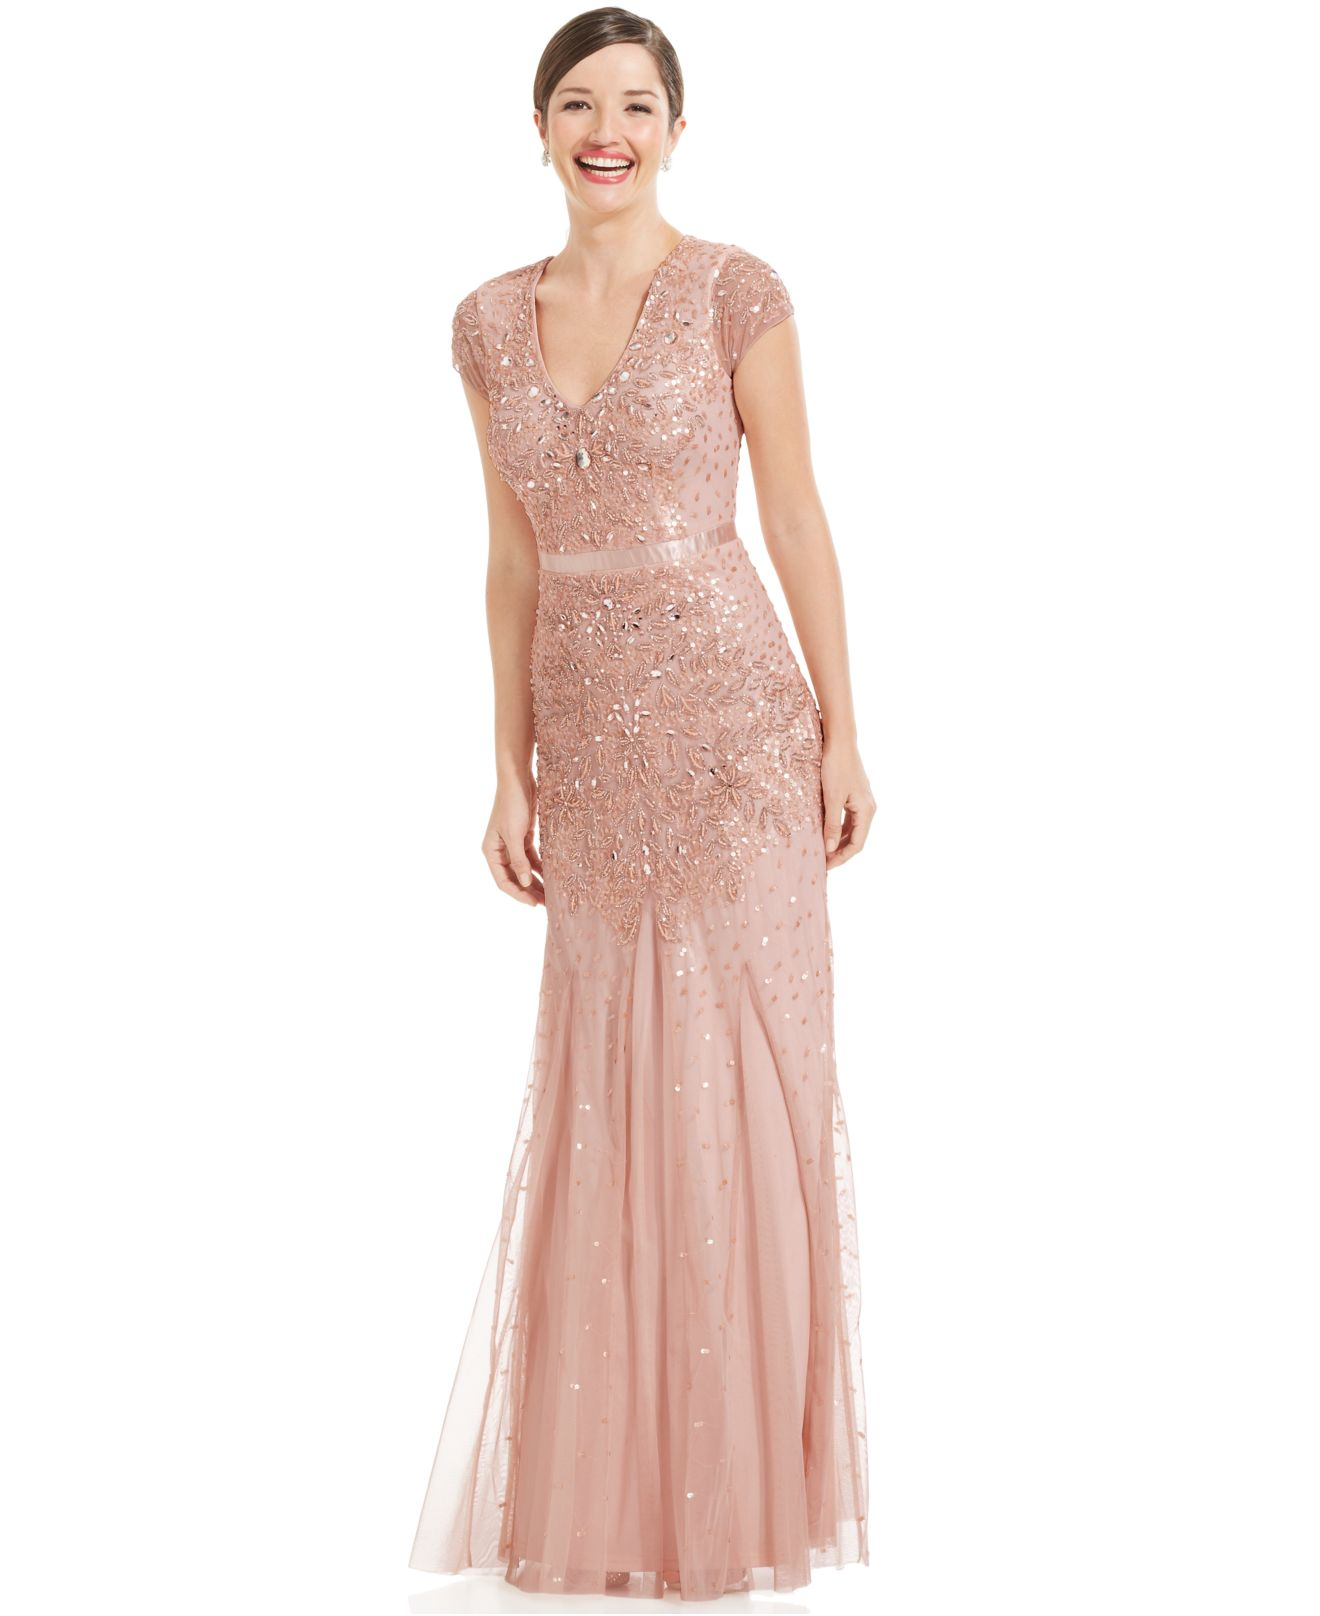 Papell cap sleeve beaded sequined gown dresses women macy s - Gallery Previously Sold At Macy S